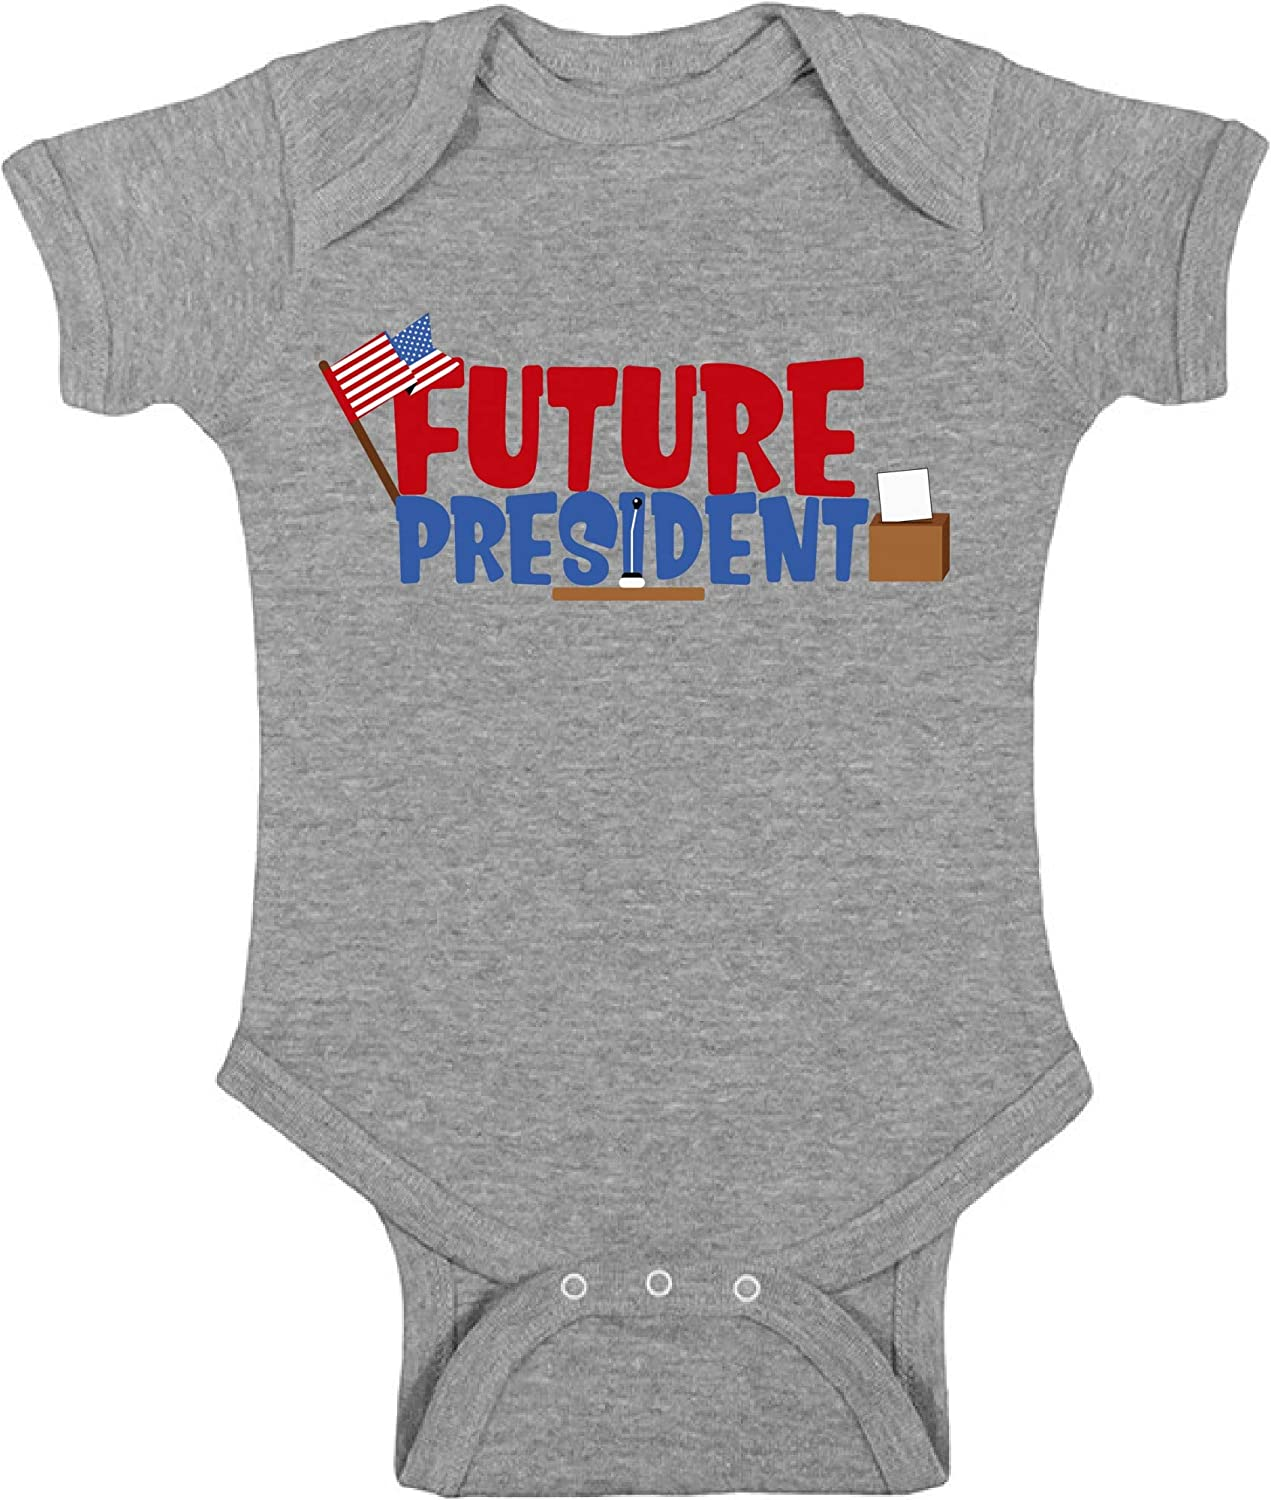 Awkward Styles Future President Bodysuit fo Newborn Baby for 1Year Old